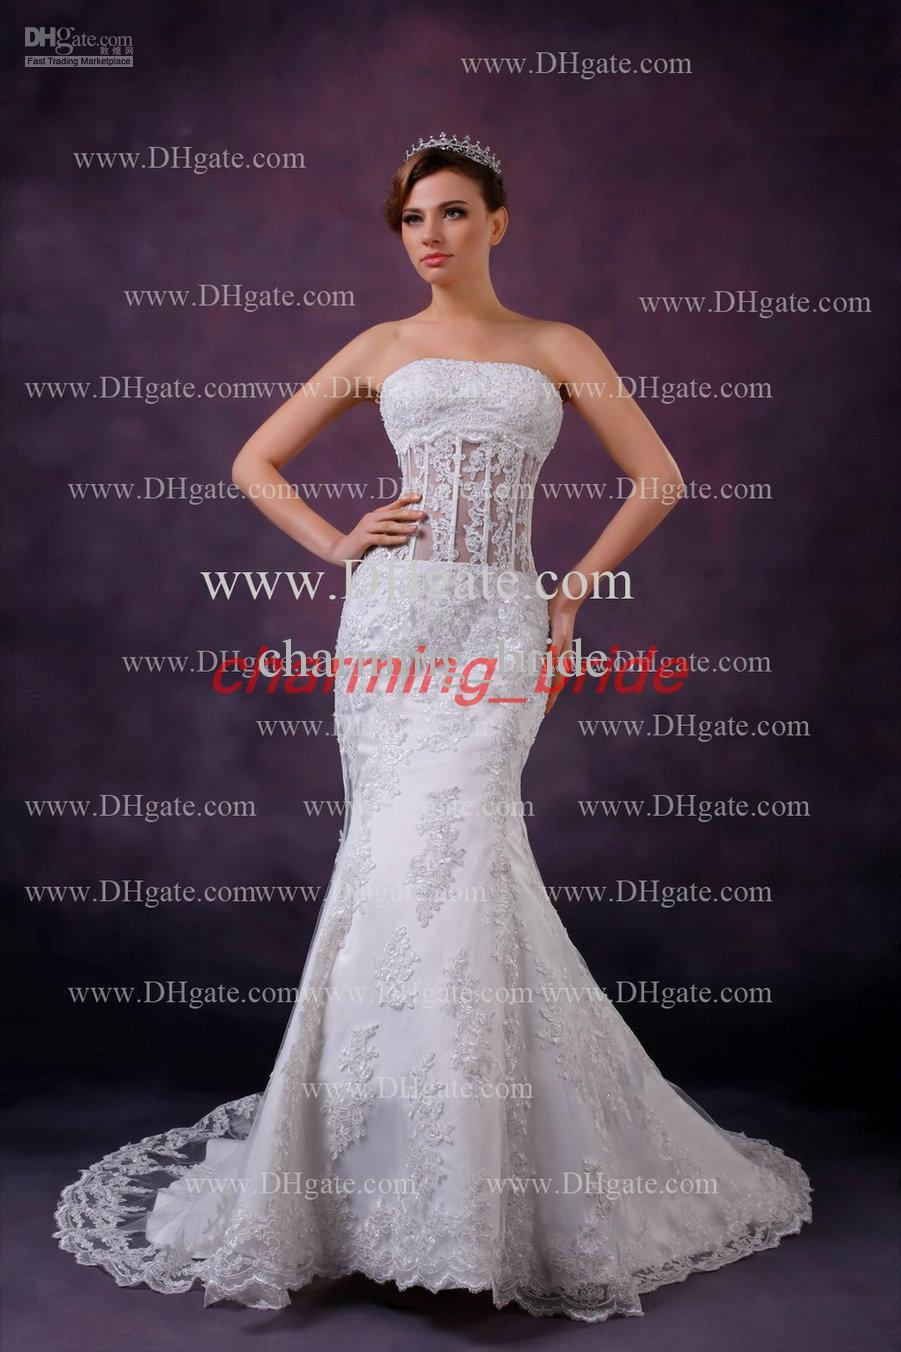 2013 Fall Sexy Elegant Mermaid Wedding Dresses Strapless Lace Corset ...